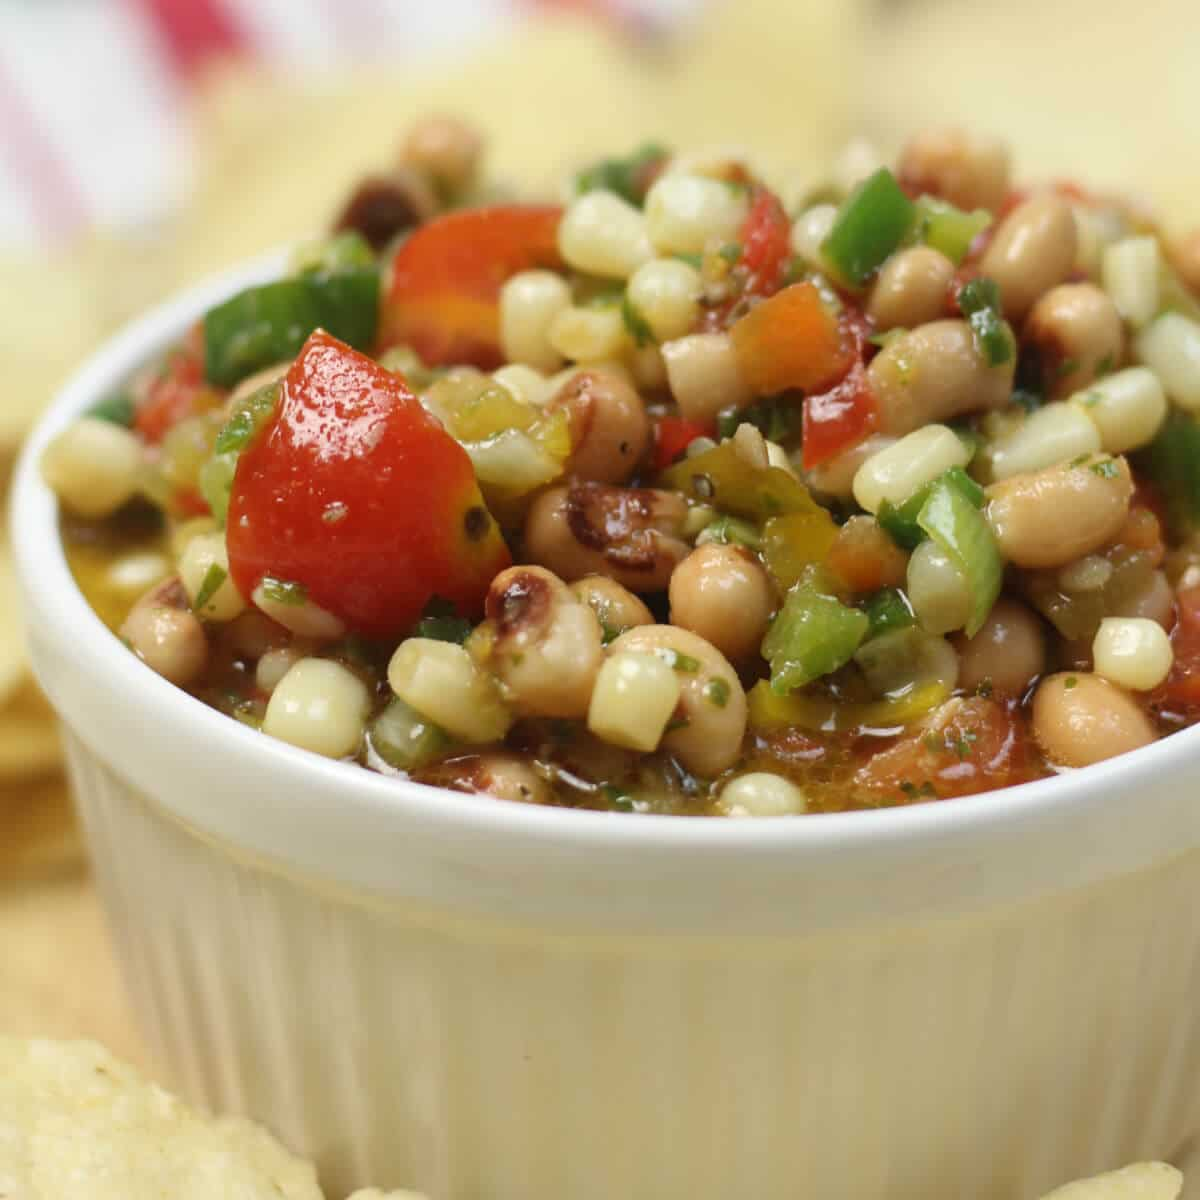 A white bowl filled with texas caviar and surrounded by chips.